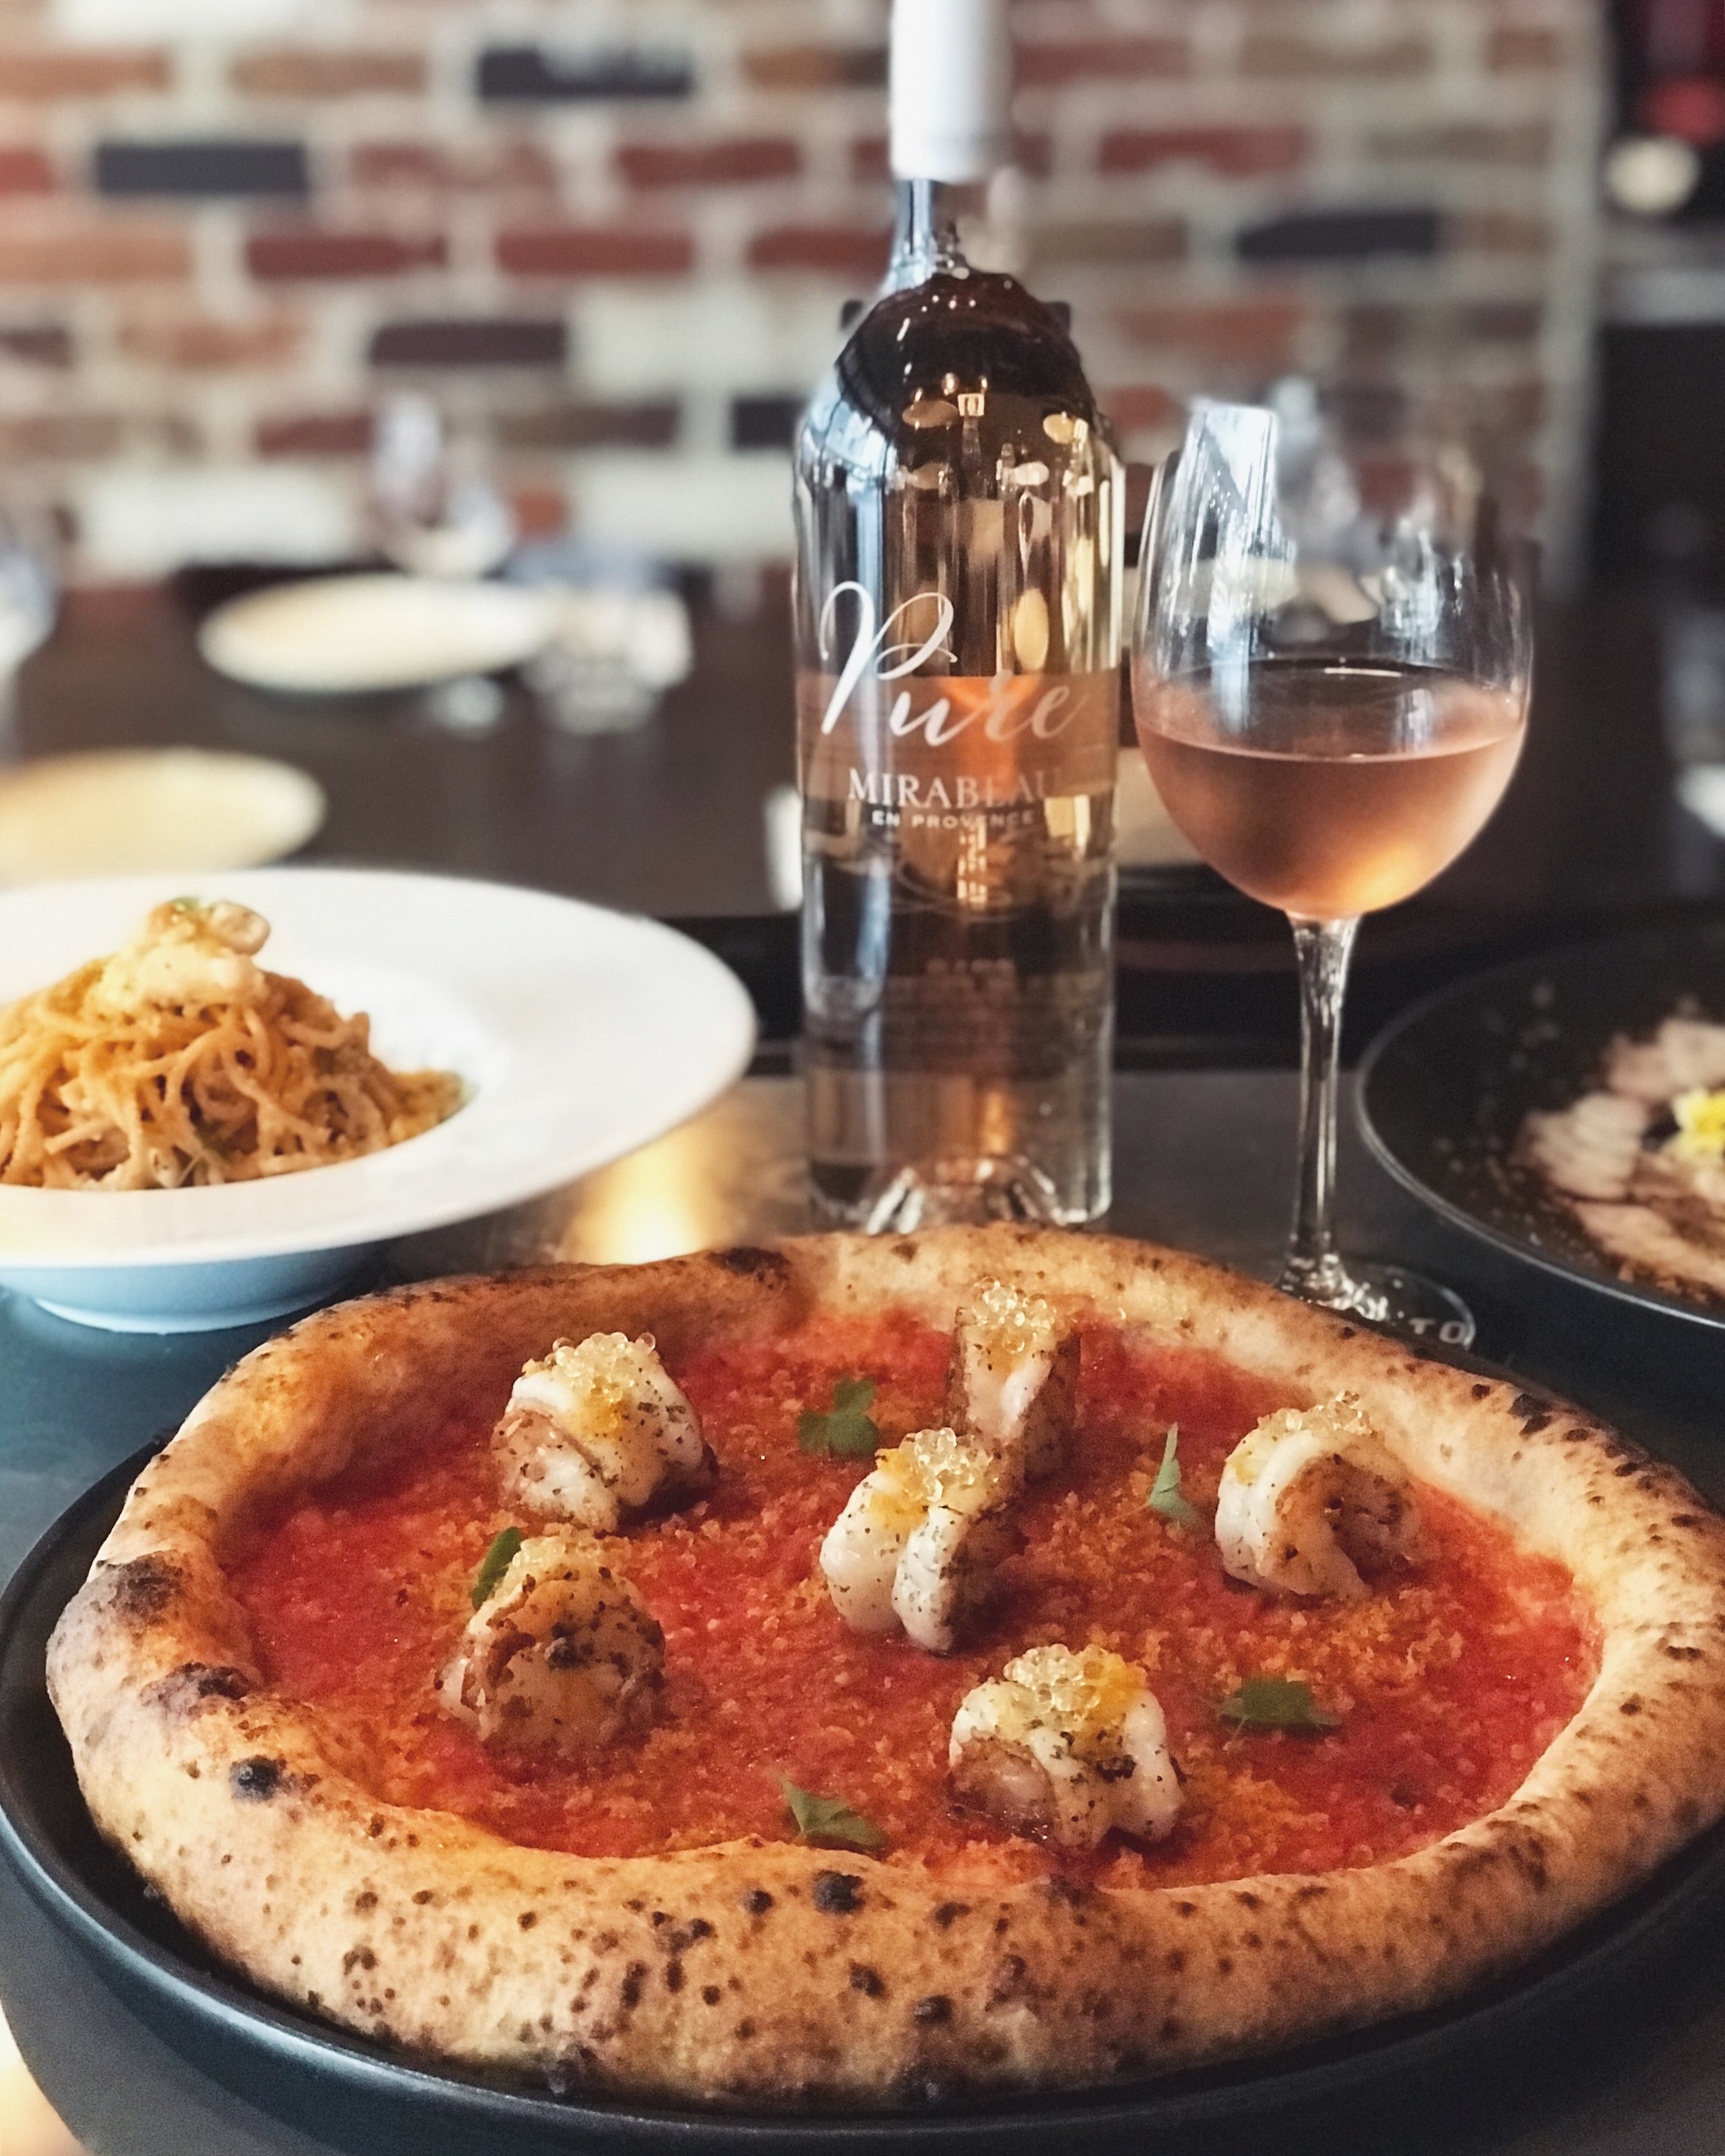 1-7 May - 🦐🍅 A luxurious seafood variant to our traditional Marinara, this pizza features Sicilian bottarga, massive king prawns, lemon pearls and a distinctive oregano-sprinkled tomato base.Just divine with our Mirabeau 'Pure' Rosé (France).